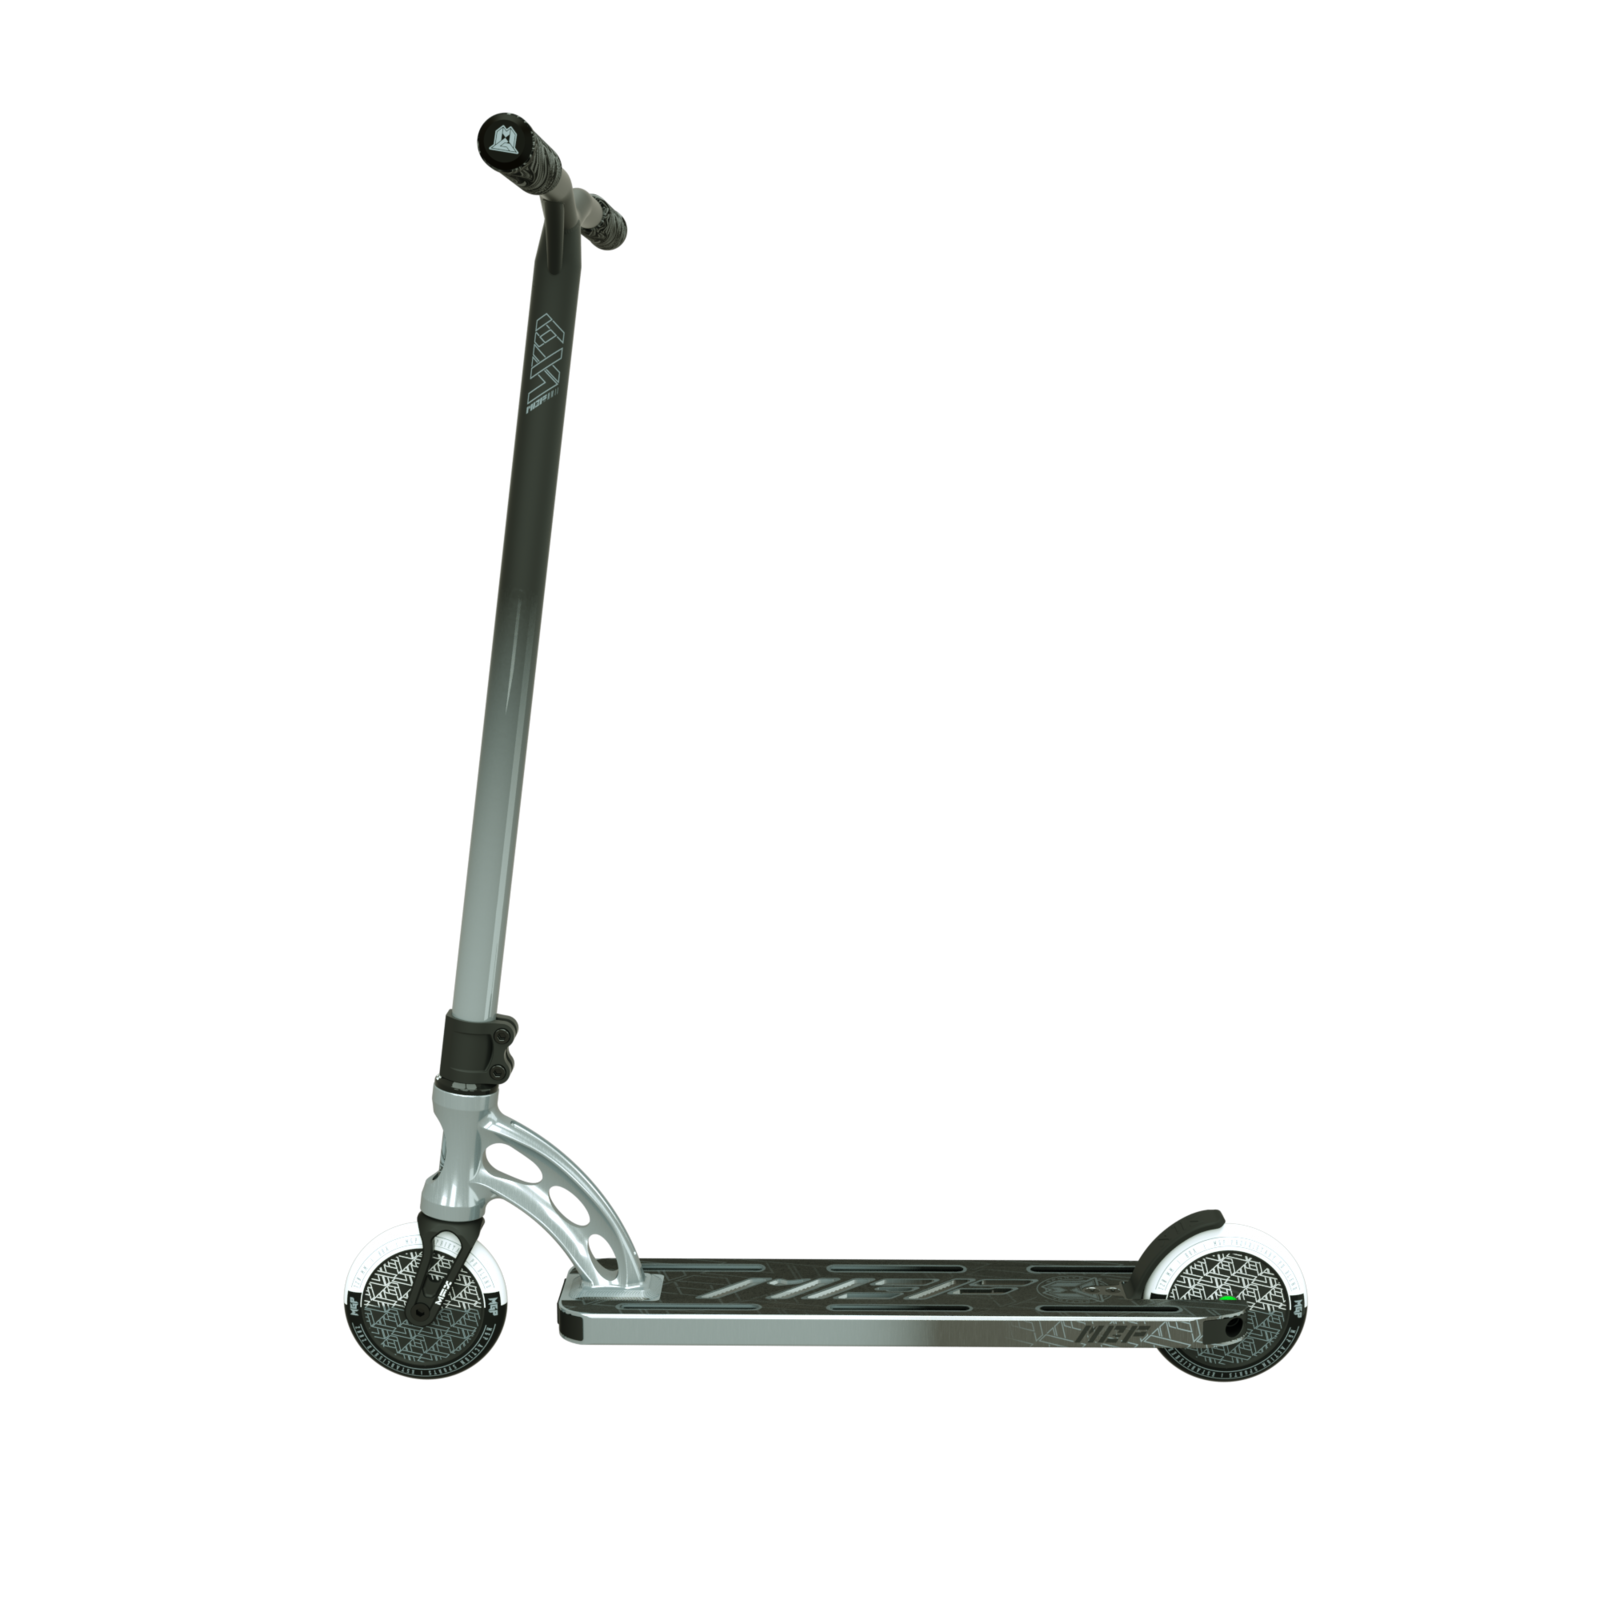 MADD Gear: VX9 Team Neo Scooter - Propane image